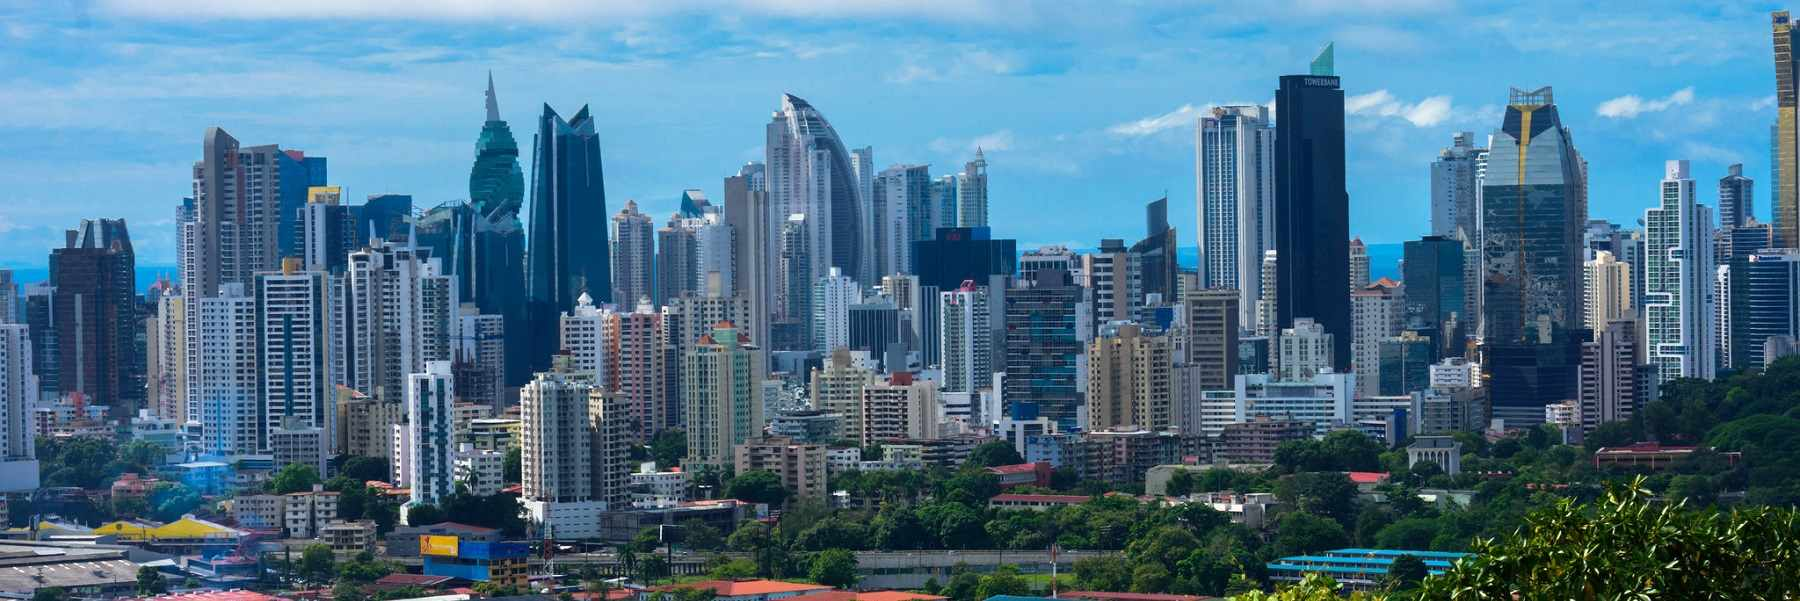 o skyline de Cidade do Panama com Marriott hotel